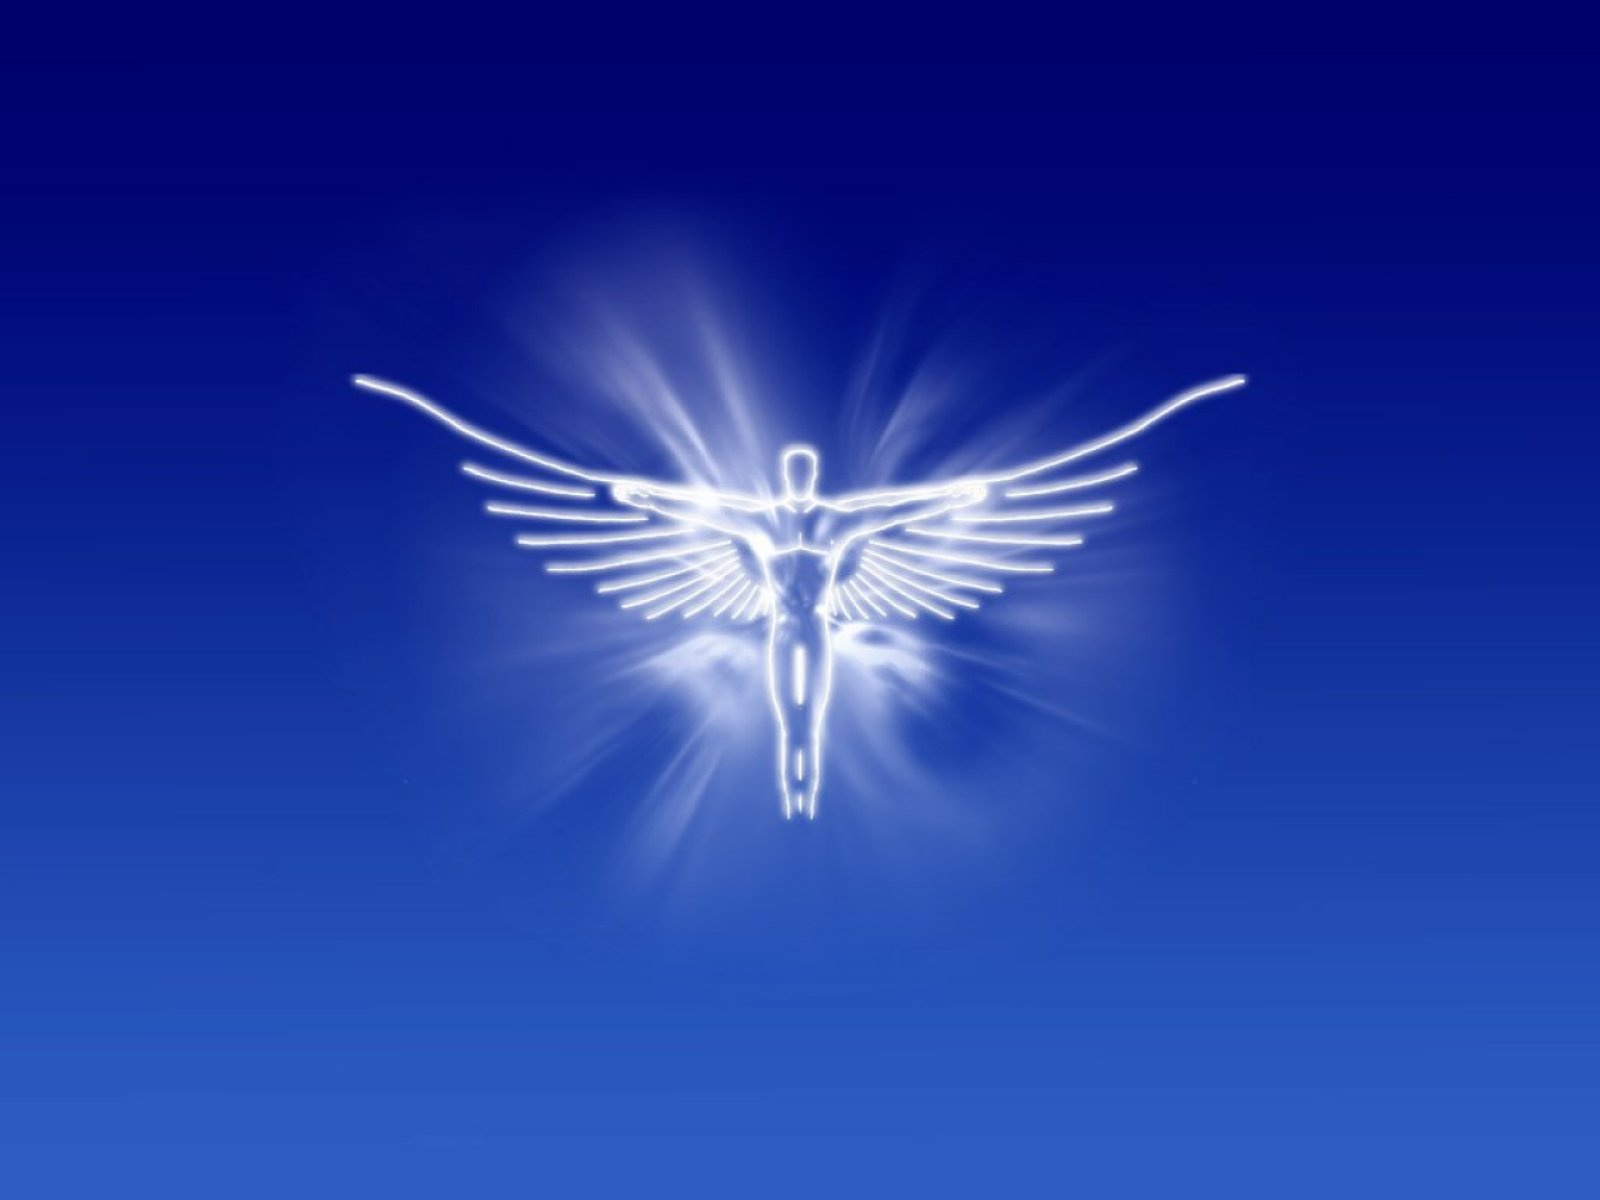 kootationcomimages of free angel waves wallpaper download thehtml 1600x1200